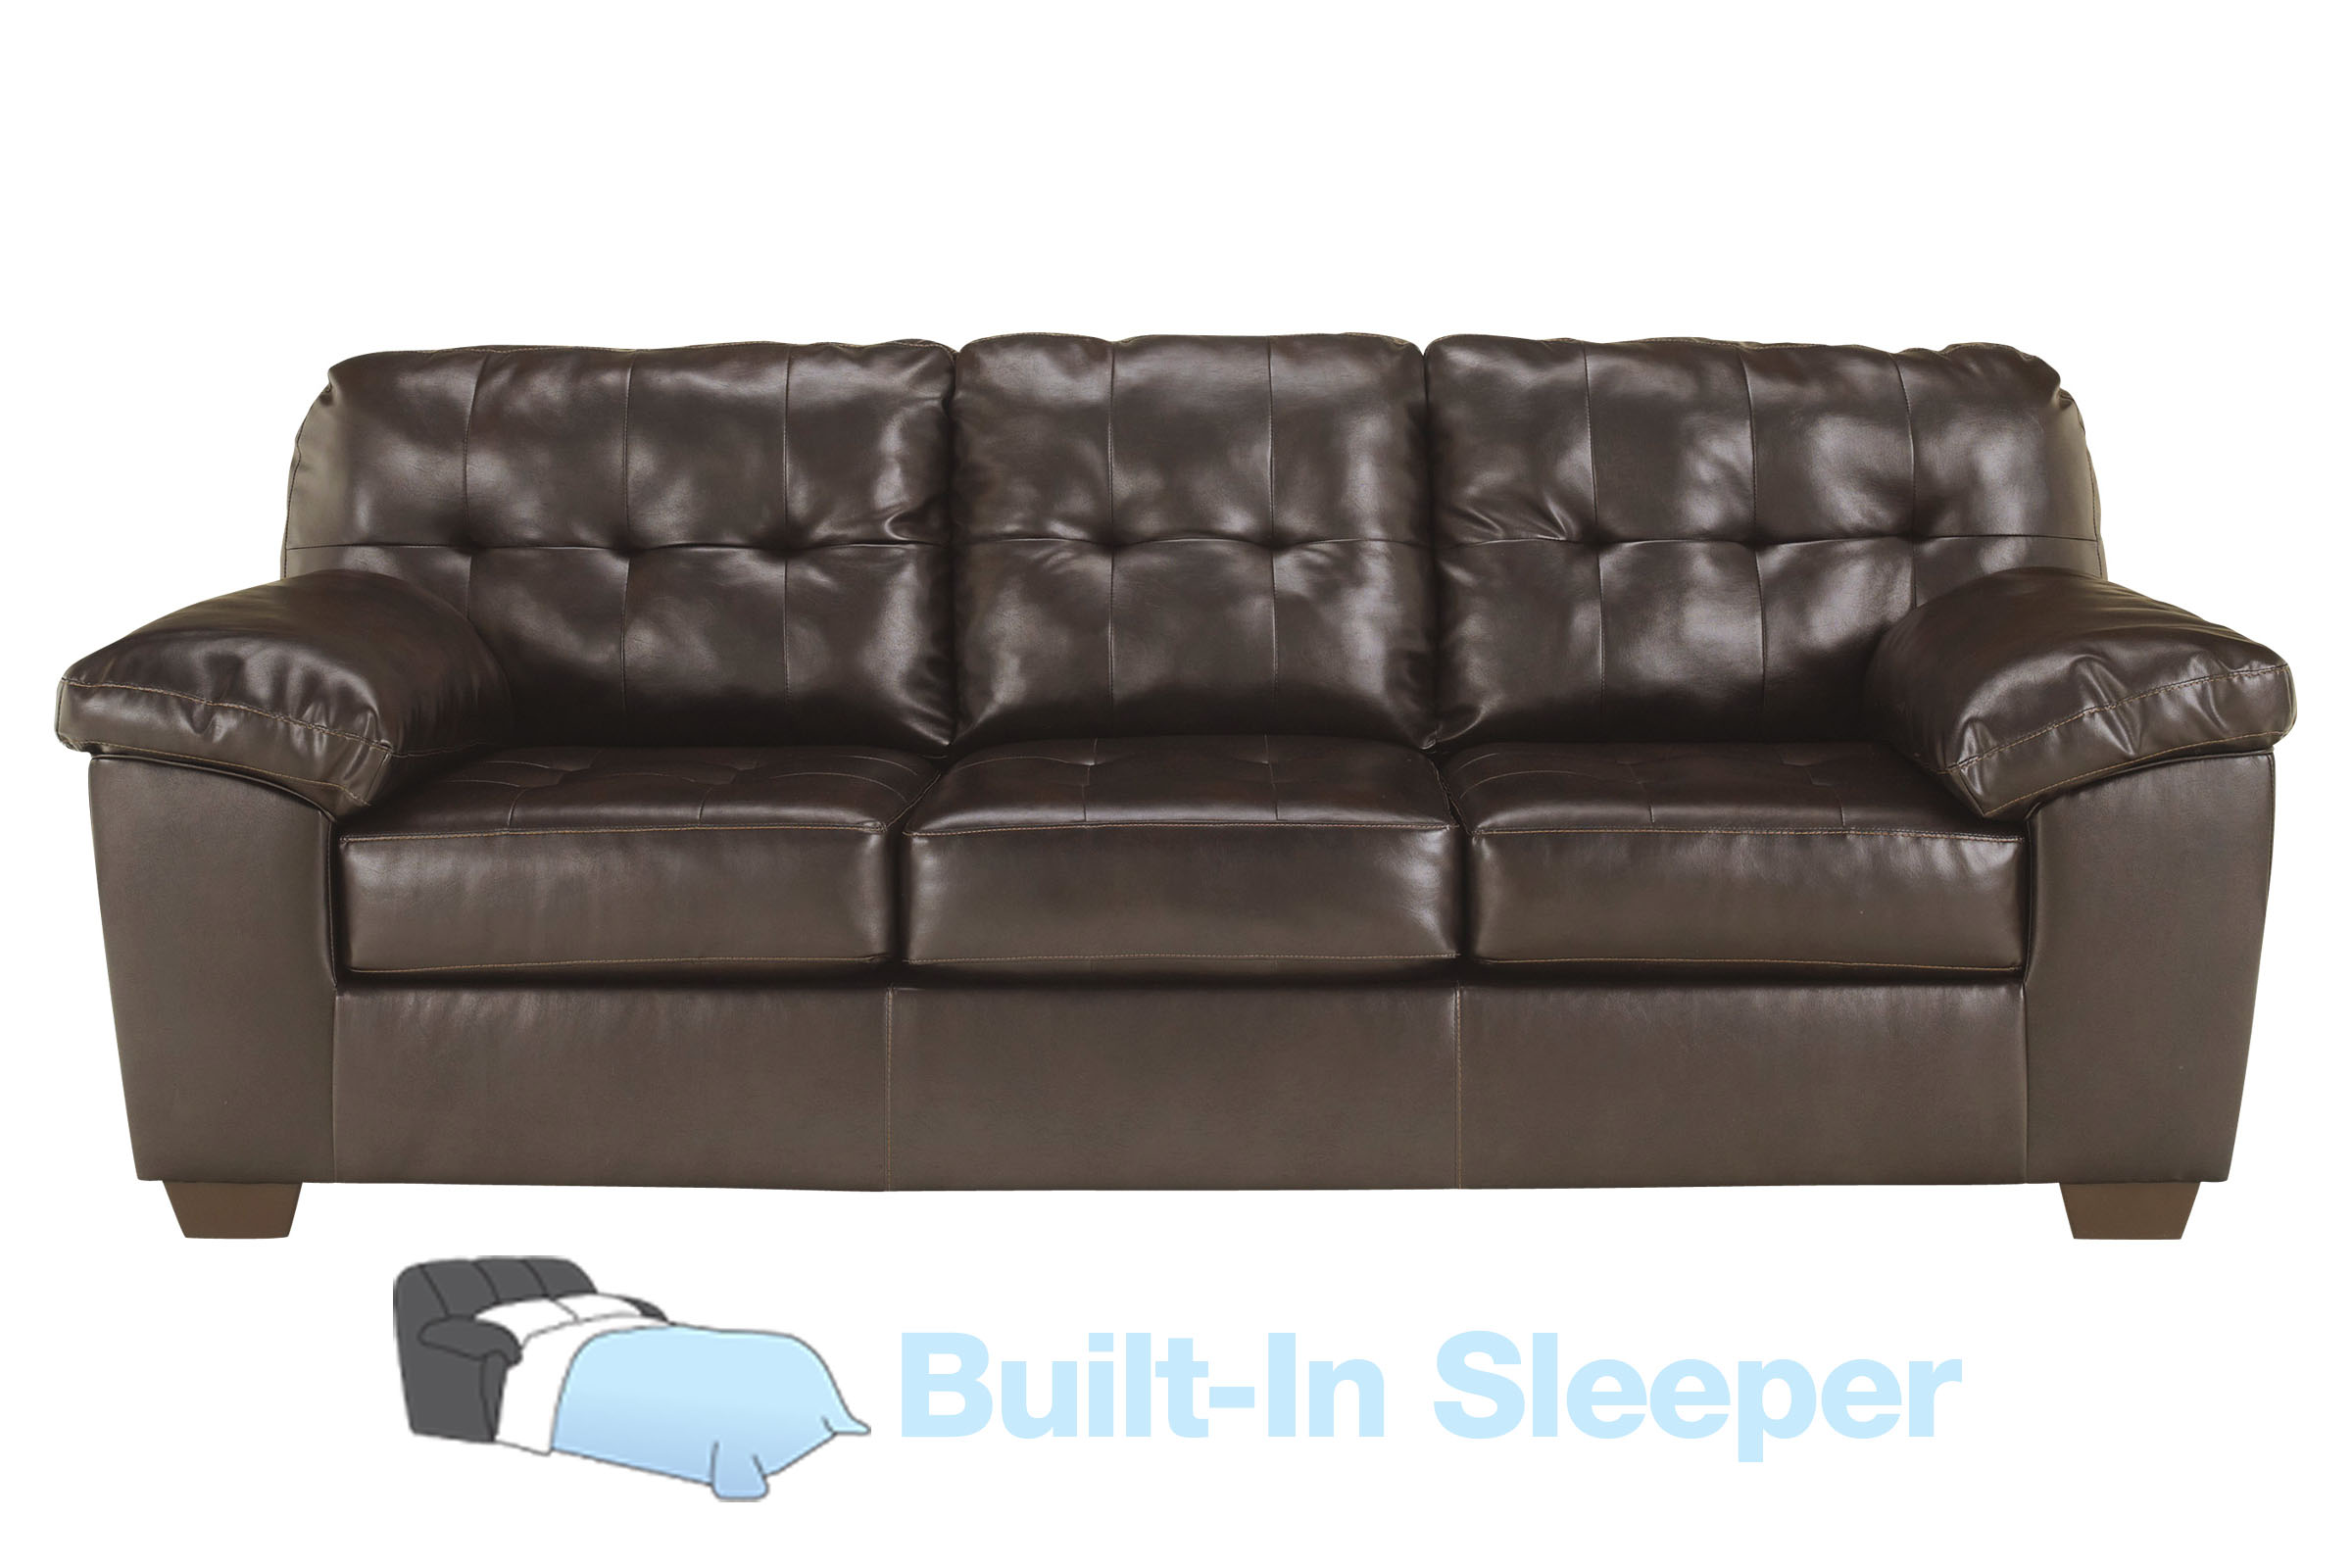 Alliston Bonded Leather Queen Sleeper Sofa at GardnerWhite